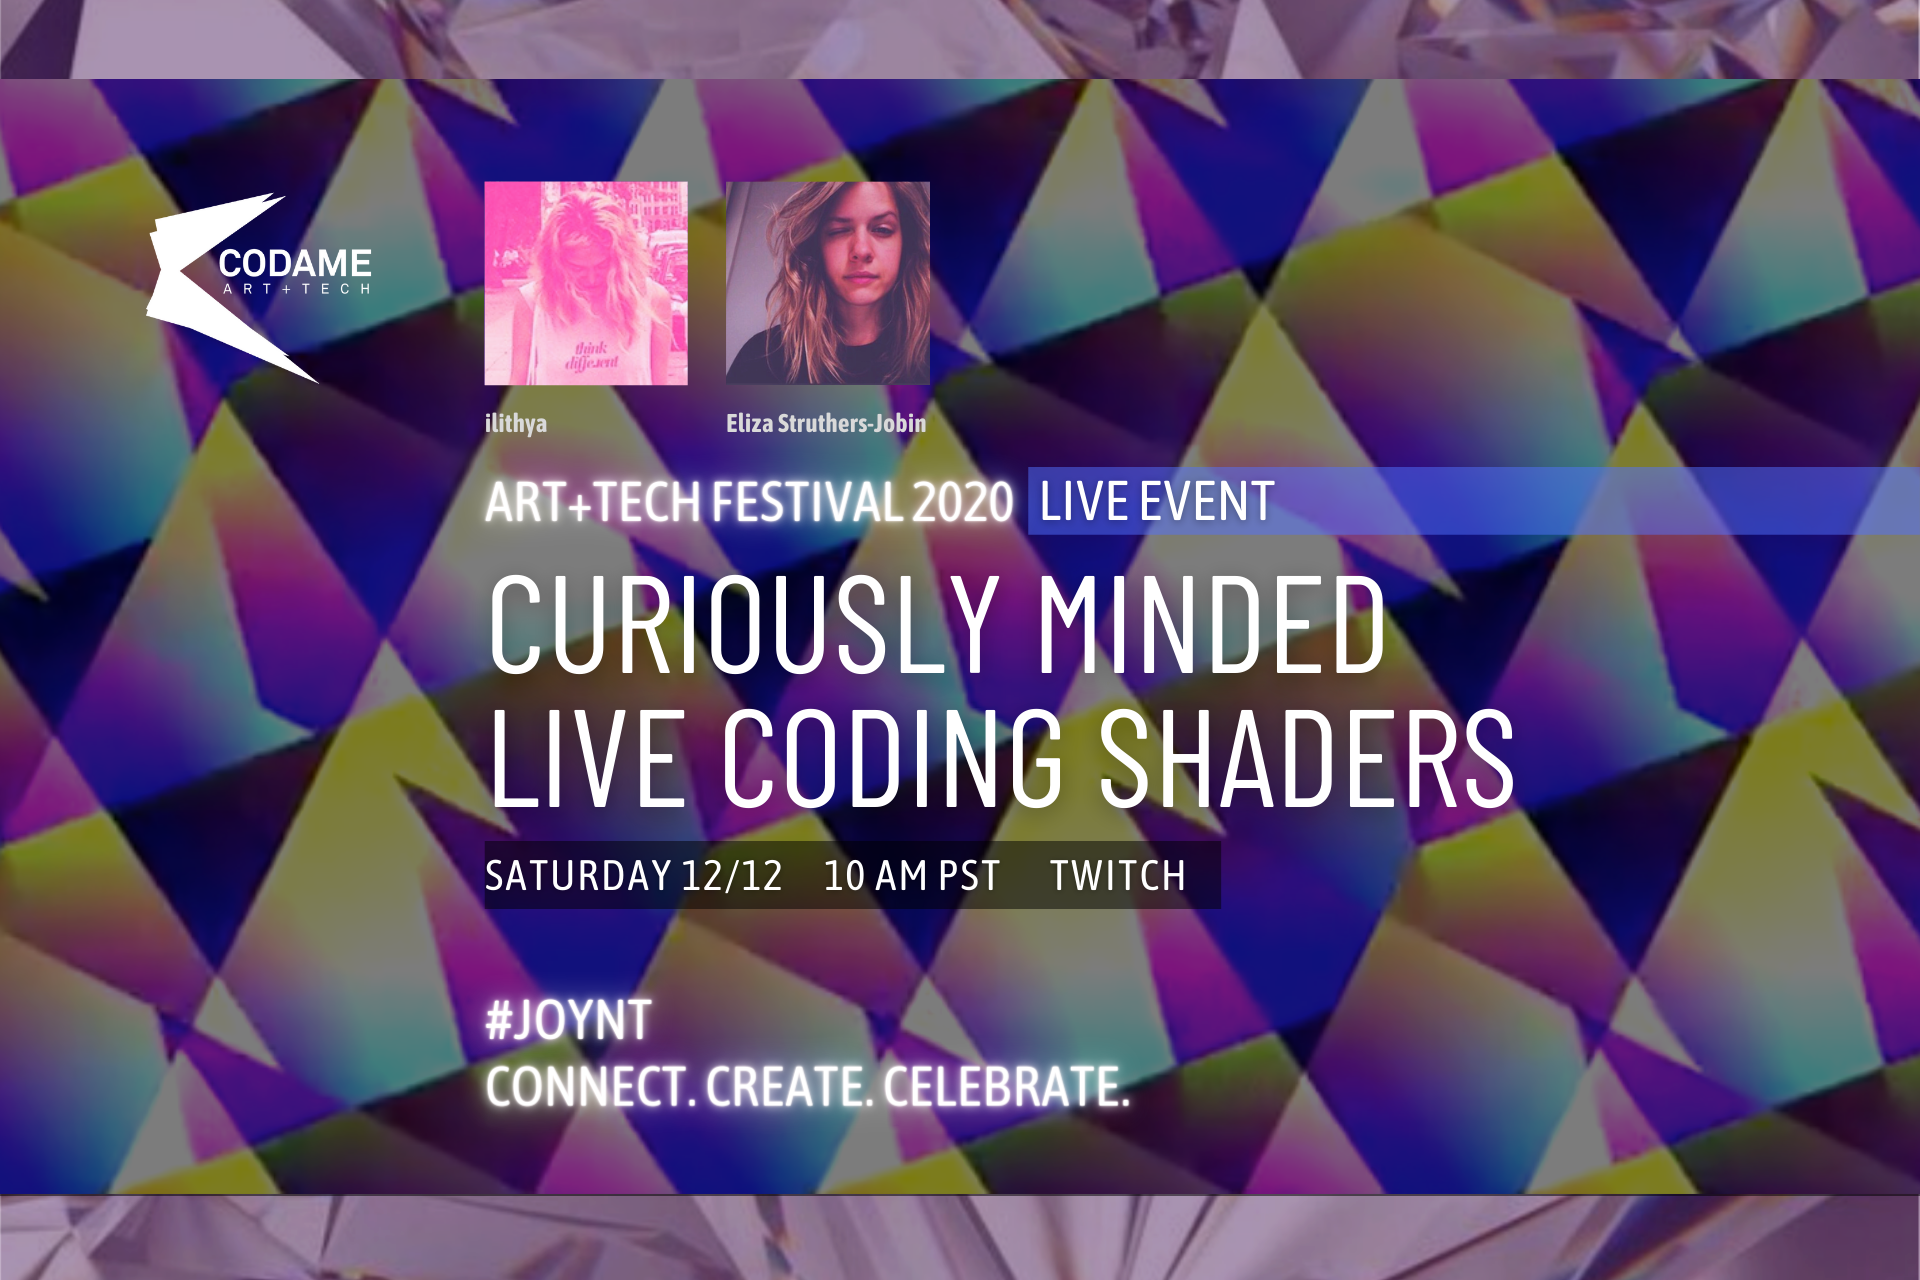 Curiously Minded: Live Coding Shaders